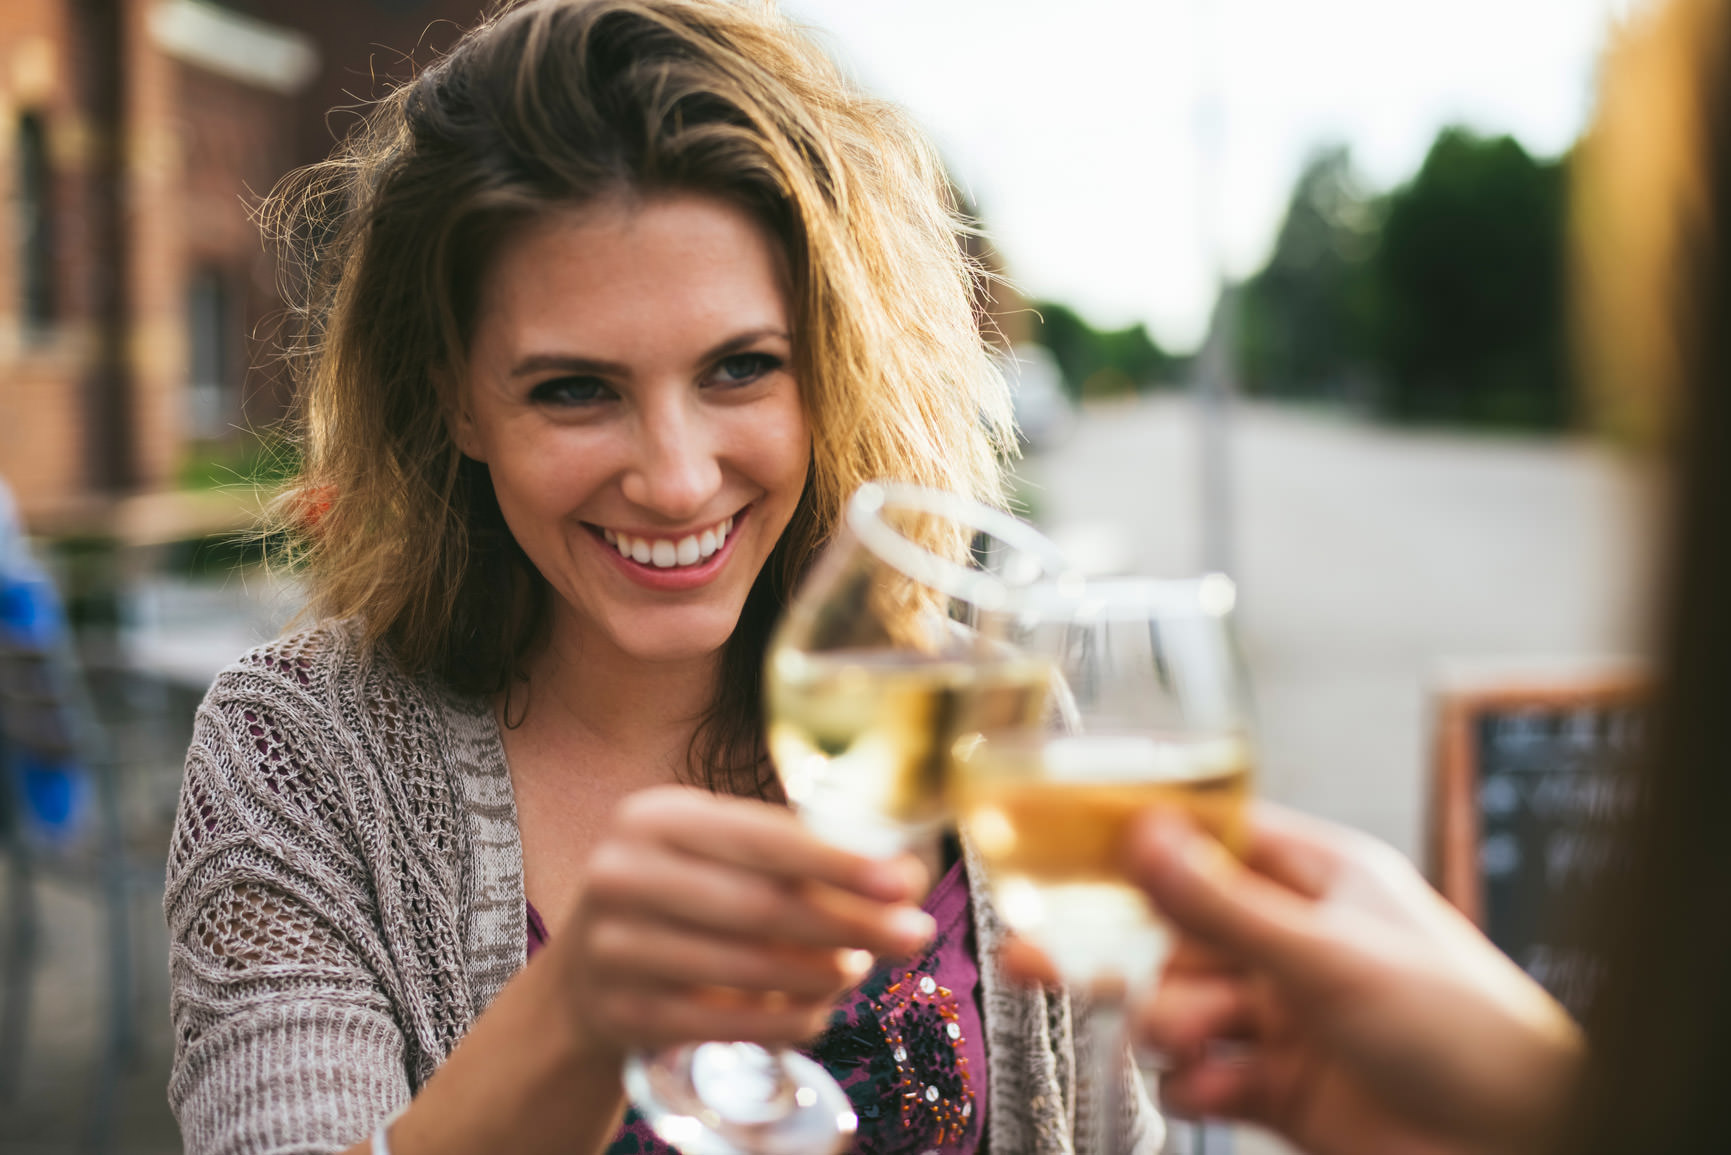 Lady Laughing And Drinking Wine Gif